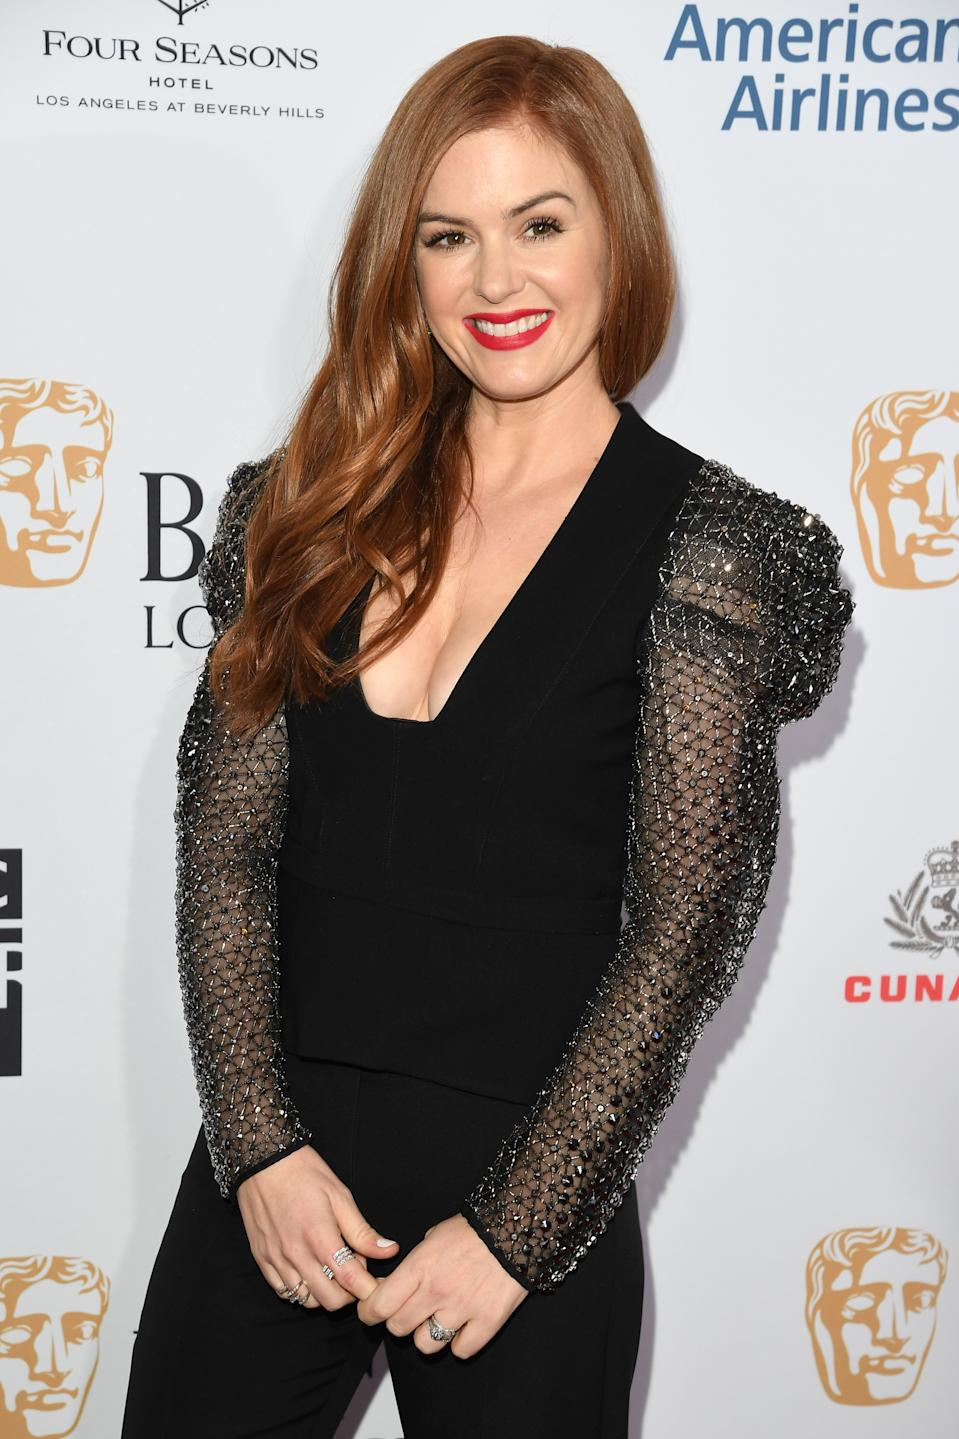 LOS ANGELES, CALIFORNIA - JANUARY 04: Isla Fisher attend The BAFTA Los Angeles Tea Party at Four Seasons Hotel Los Angeles at Beverly Hills on January 04, 2020 in Los Angeles, California. (Photo by Daniele Venturelli/Getty Images)